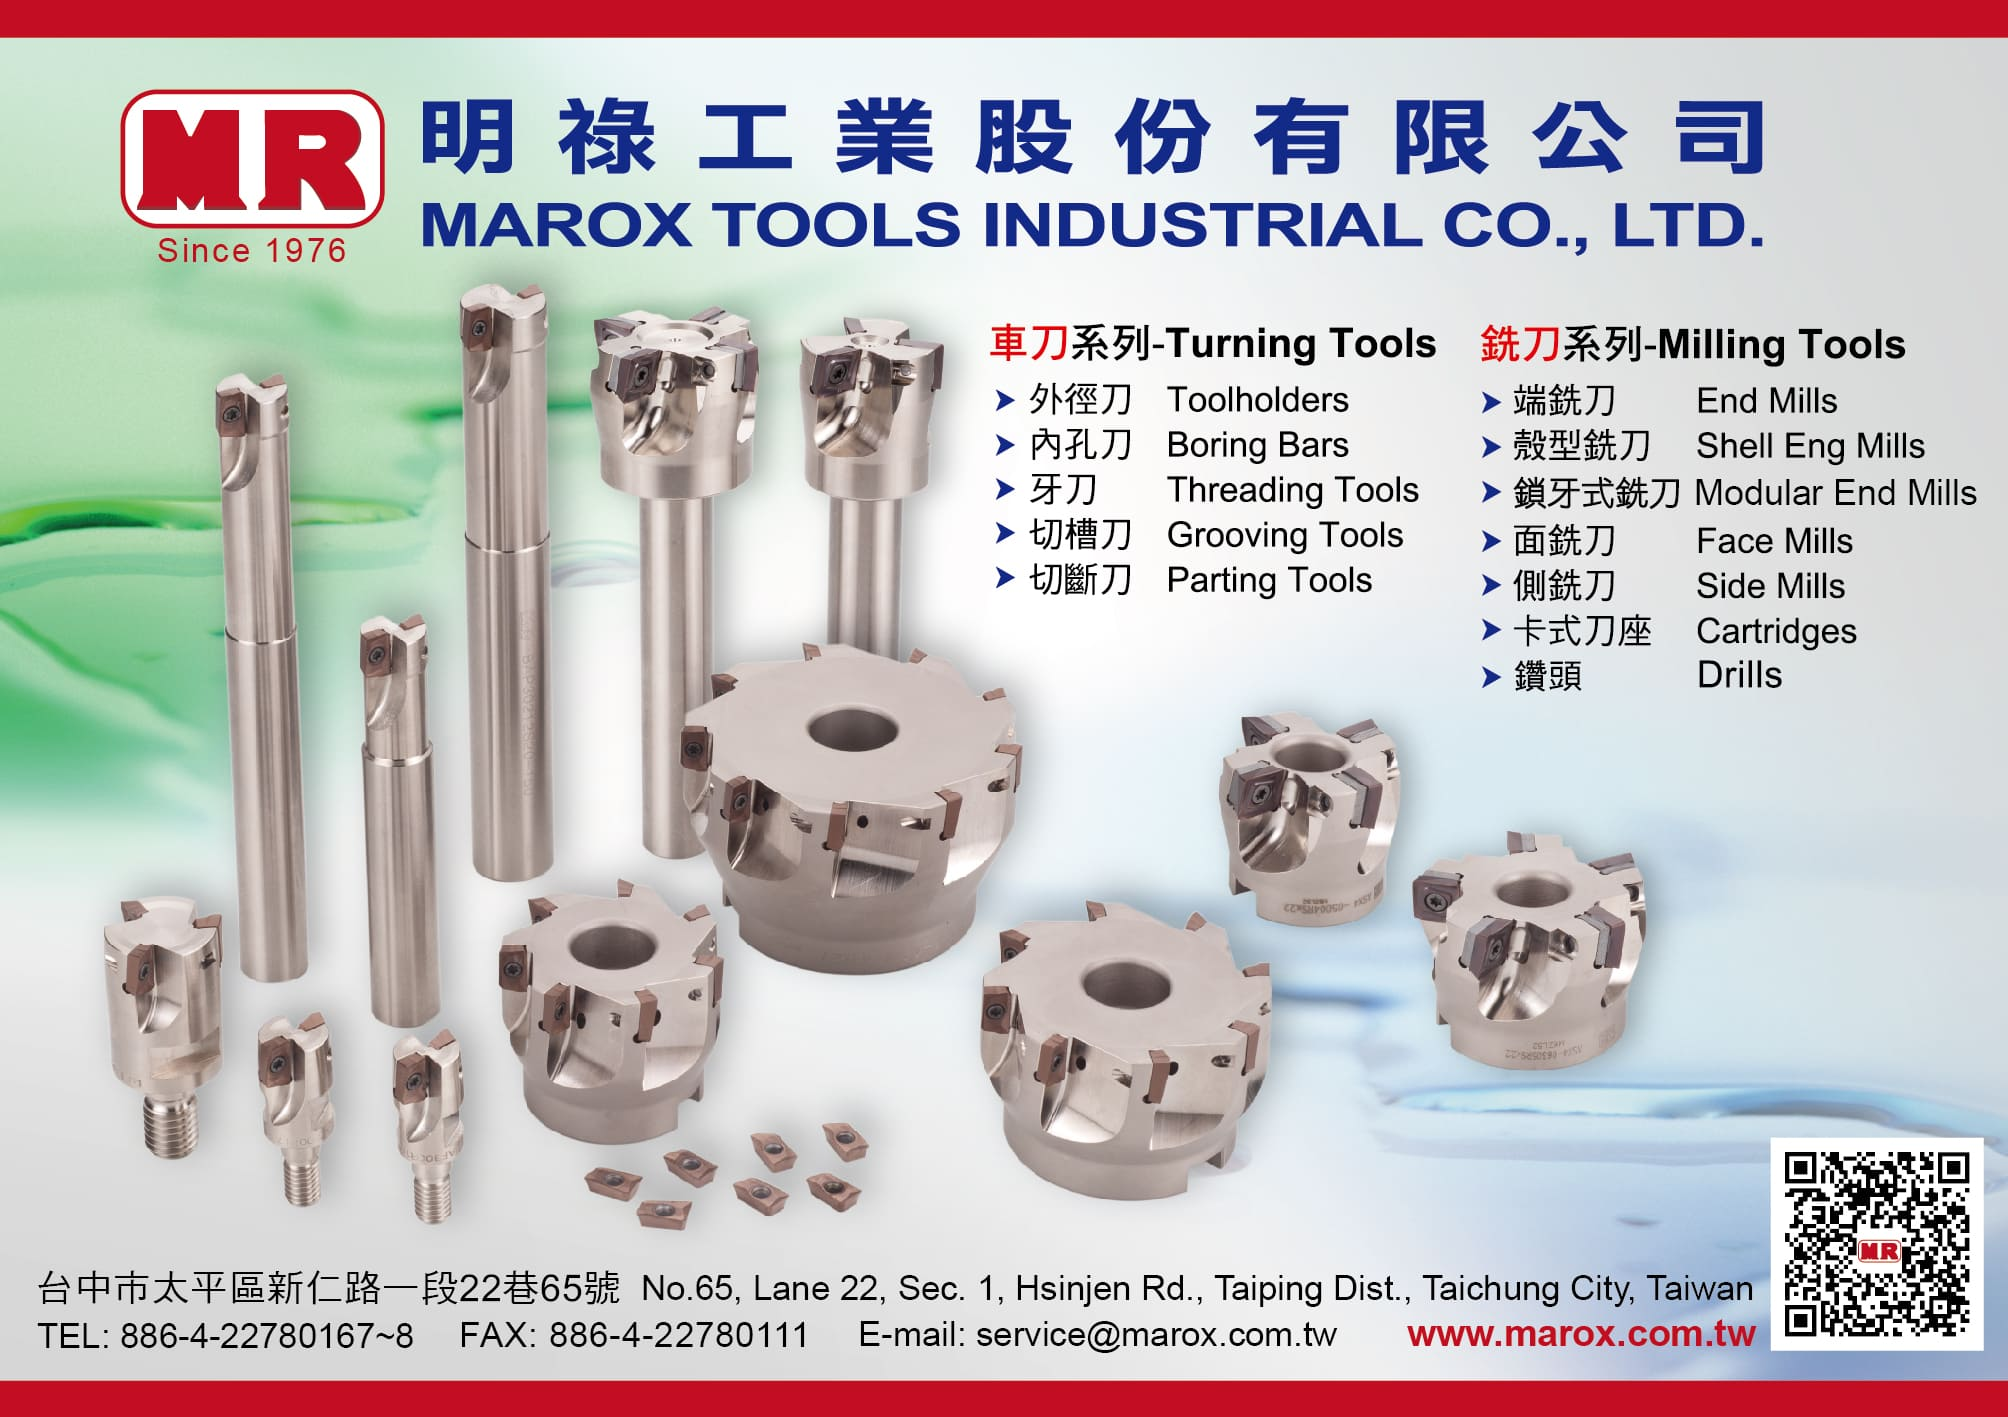 MAROX TOOLS INDUSTRIAL CO., LTD.